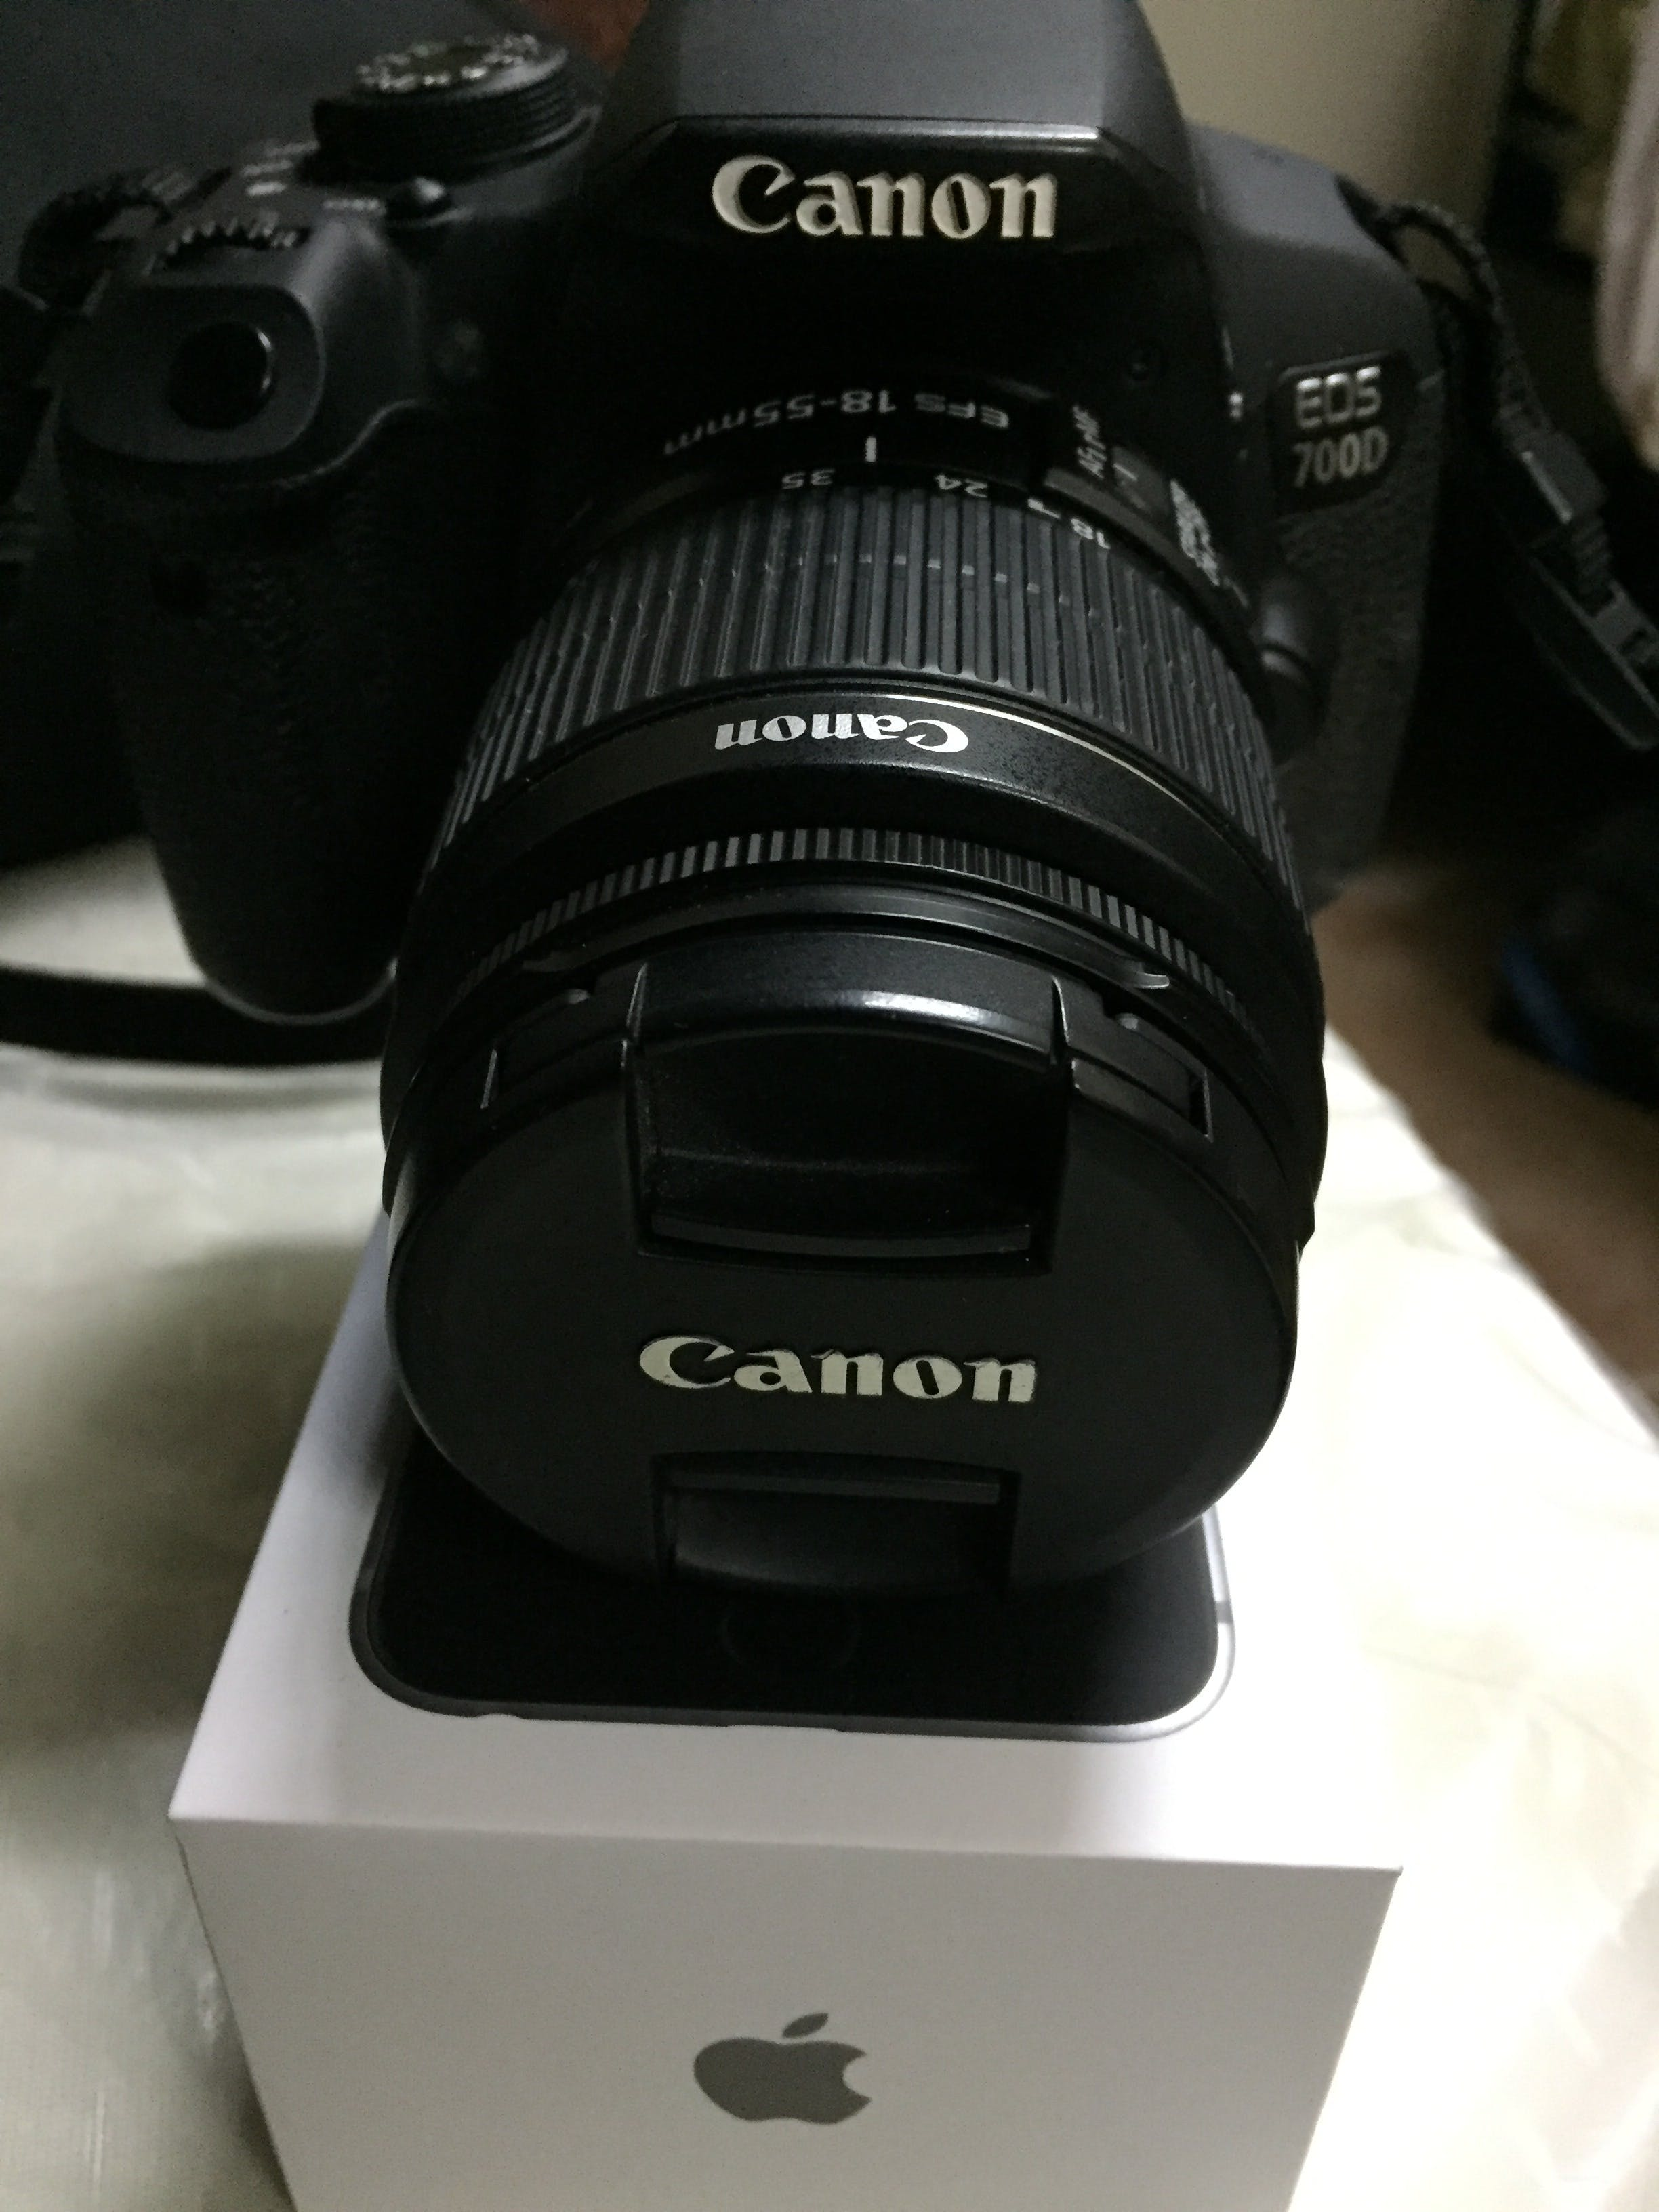 Free stock photo of 700D, camera, canon, iphone